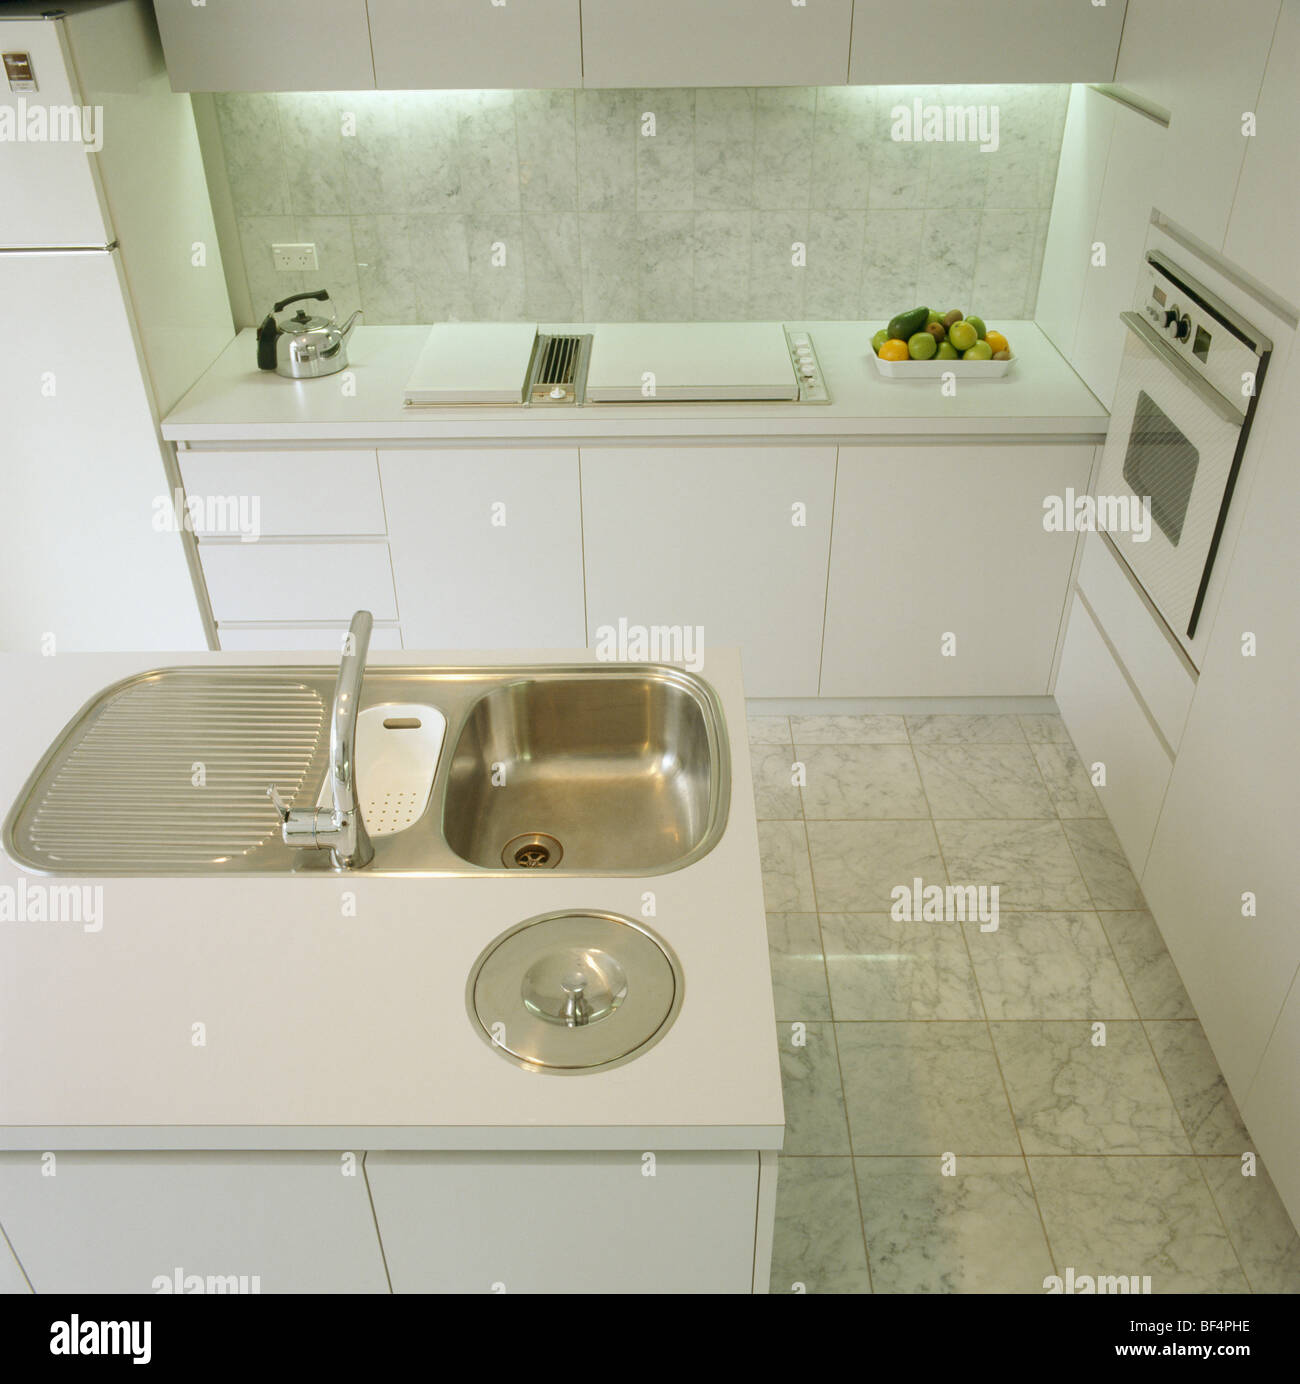 Kitchen Island Unit With Sink And Hob island unit with stainless steel sink in modern white kitchen with